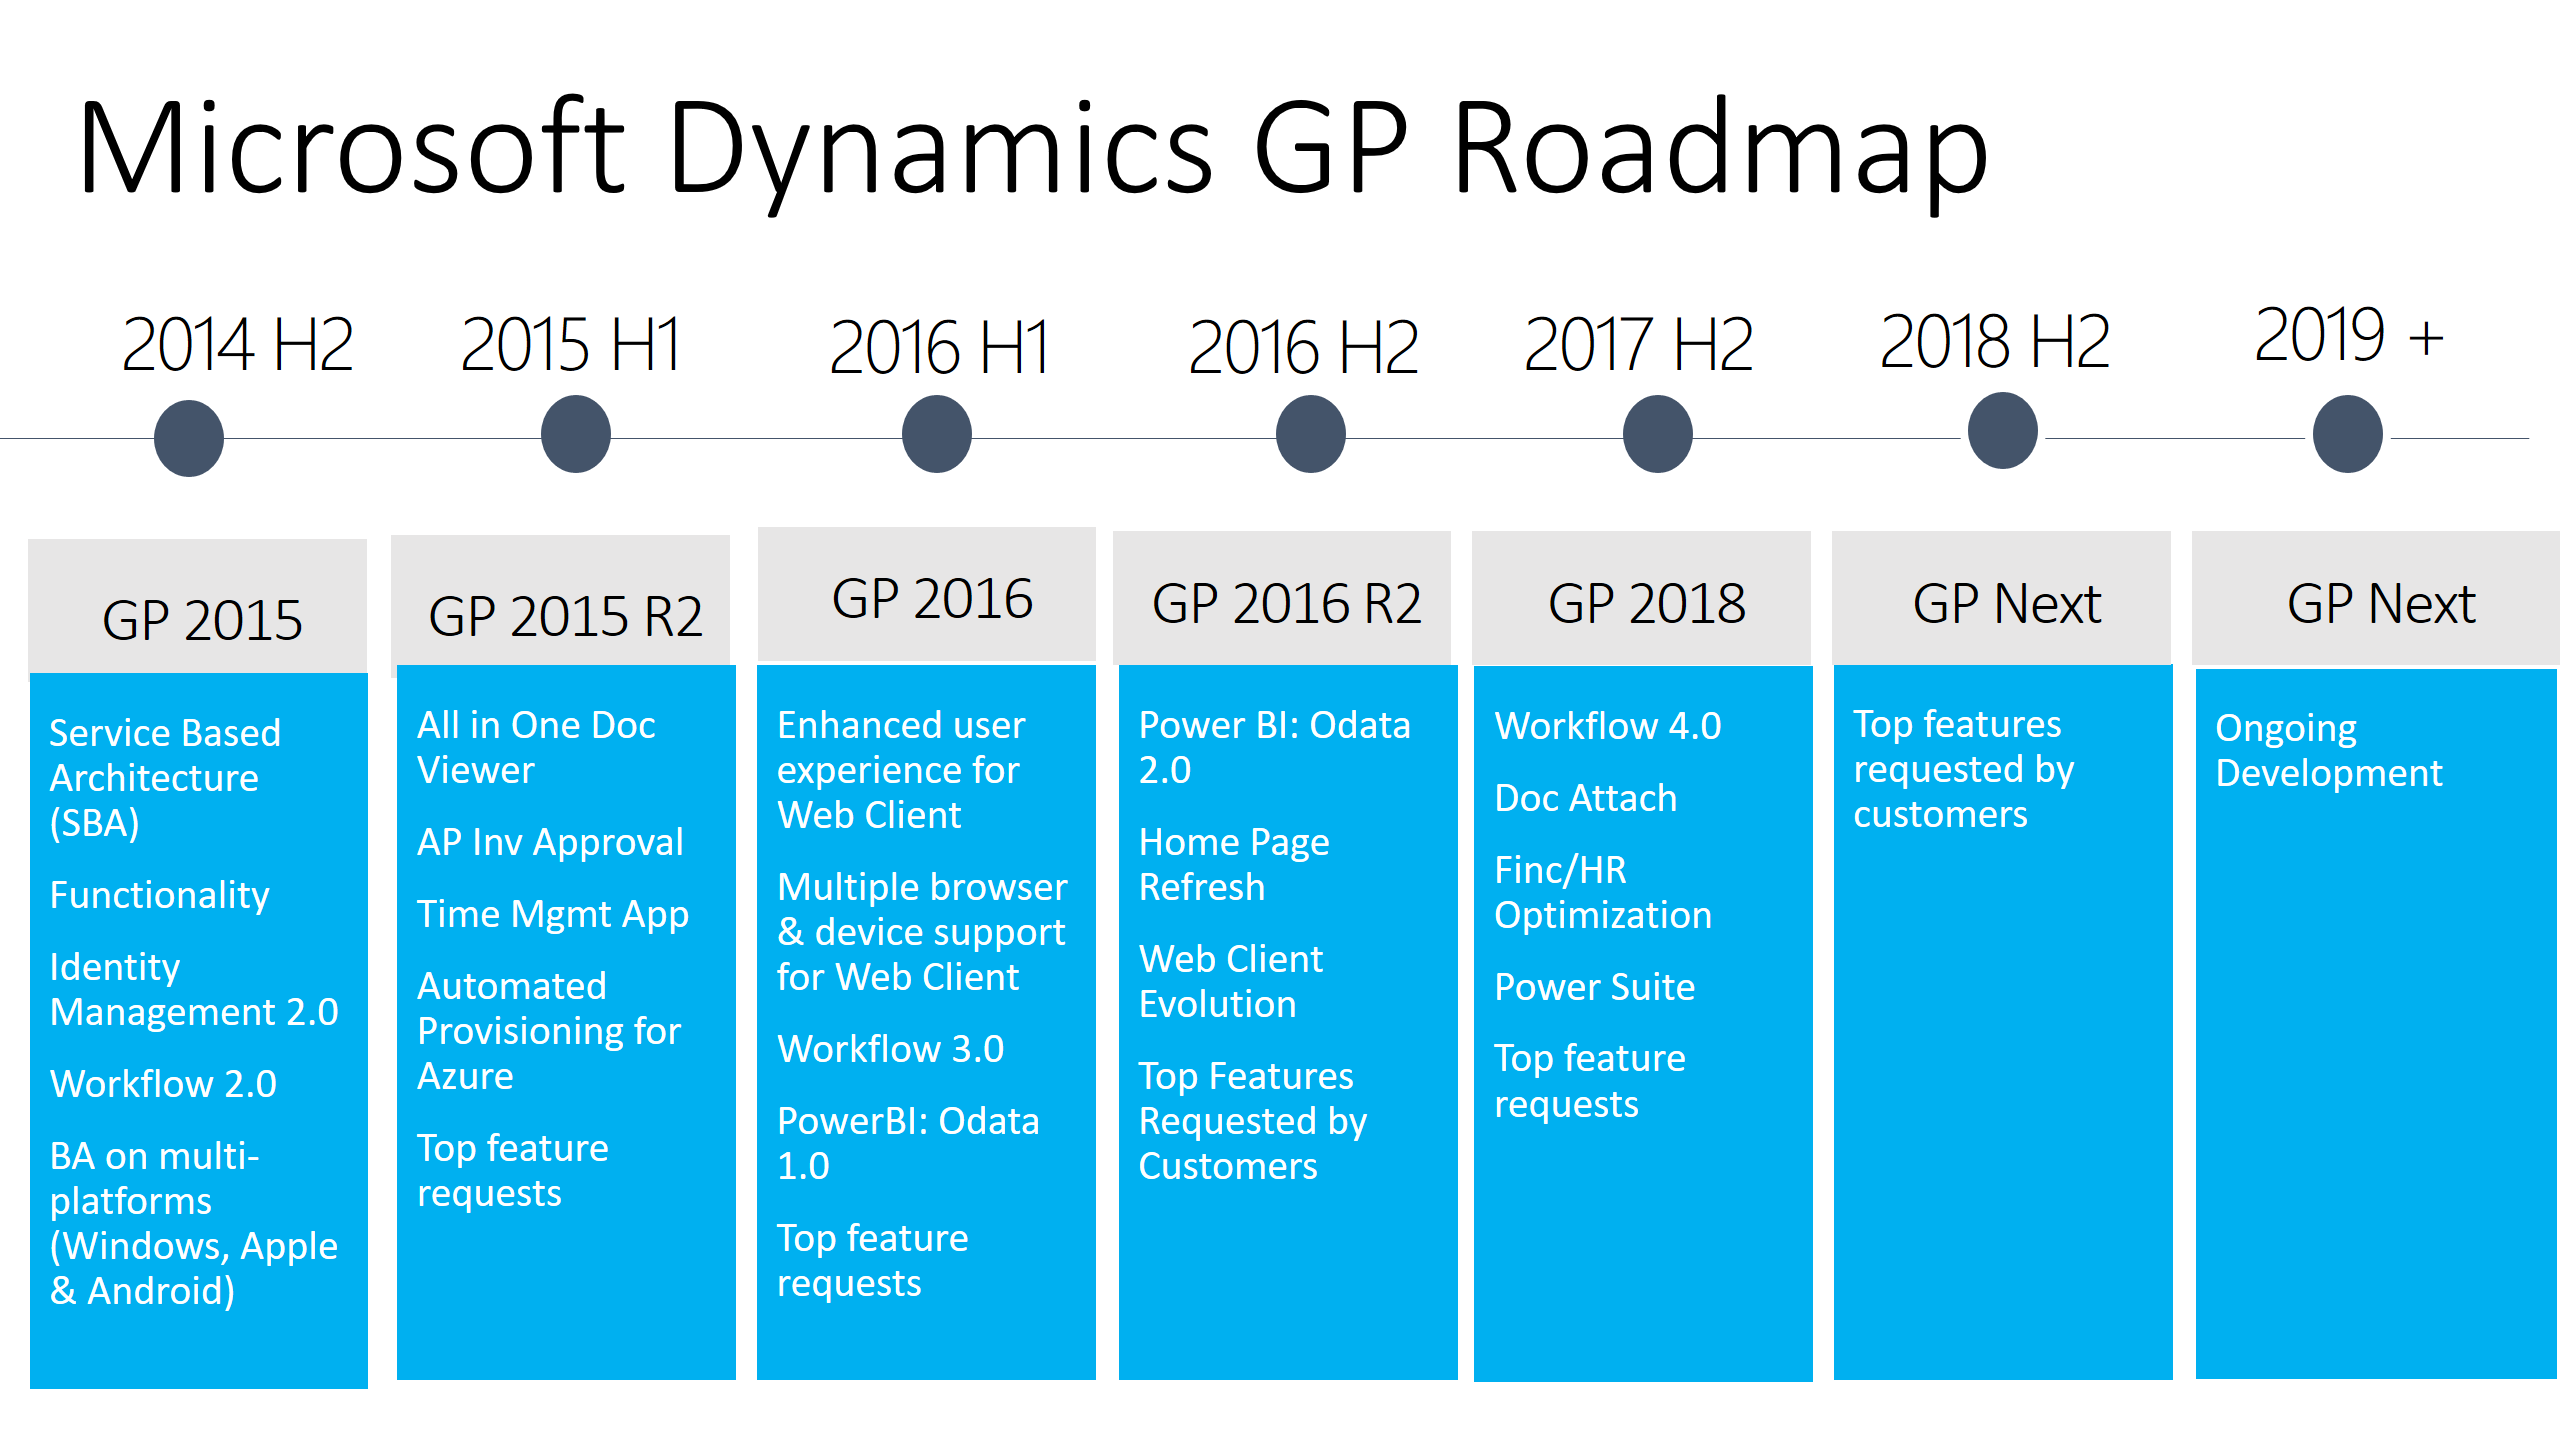 https://winthropdc.files.wordpress.com/2017/03/gp_roadmap.png